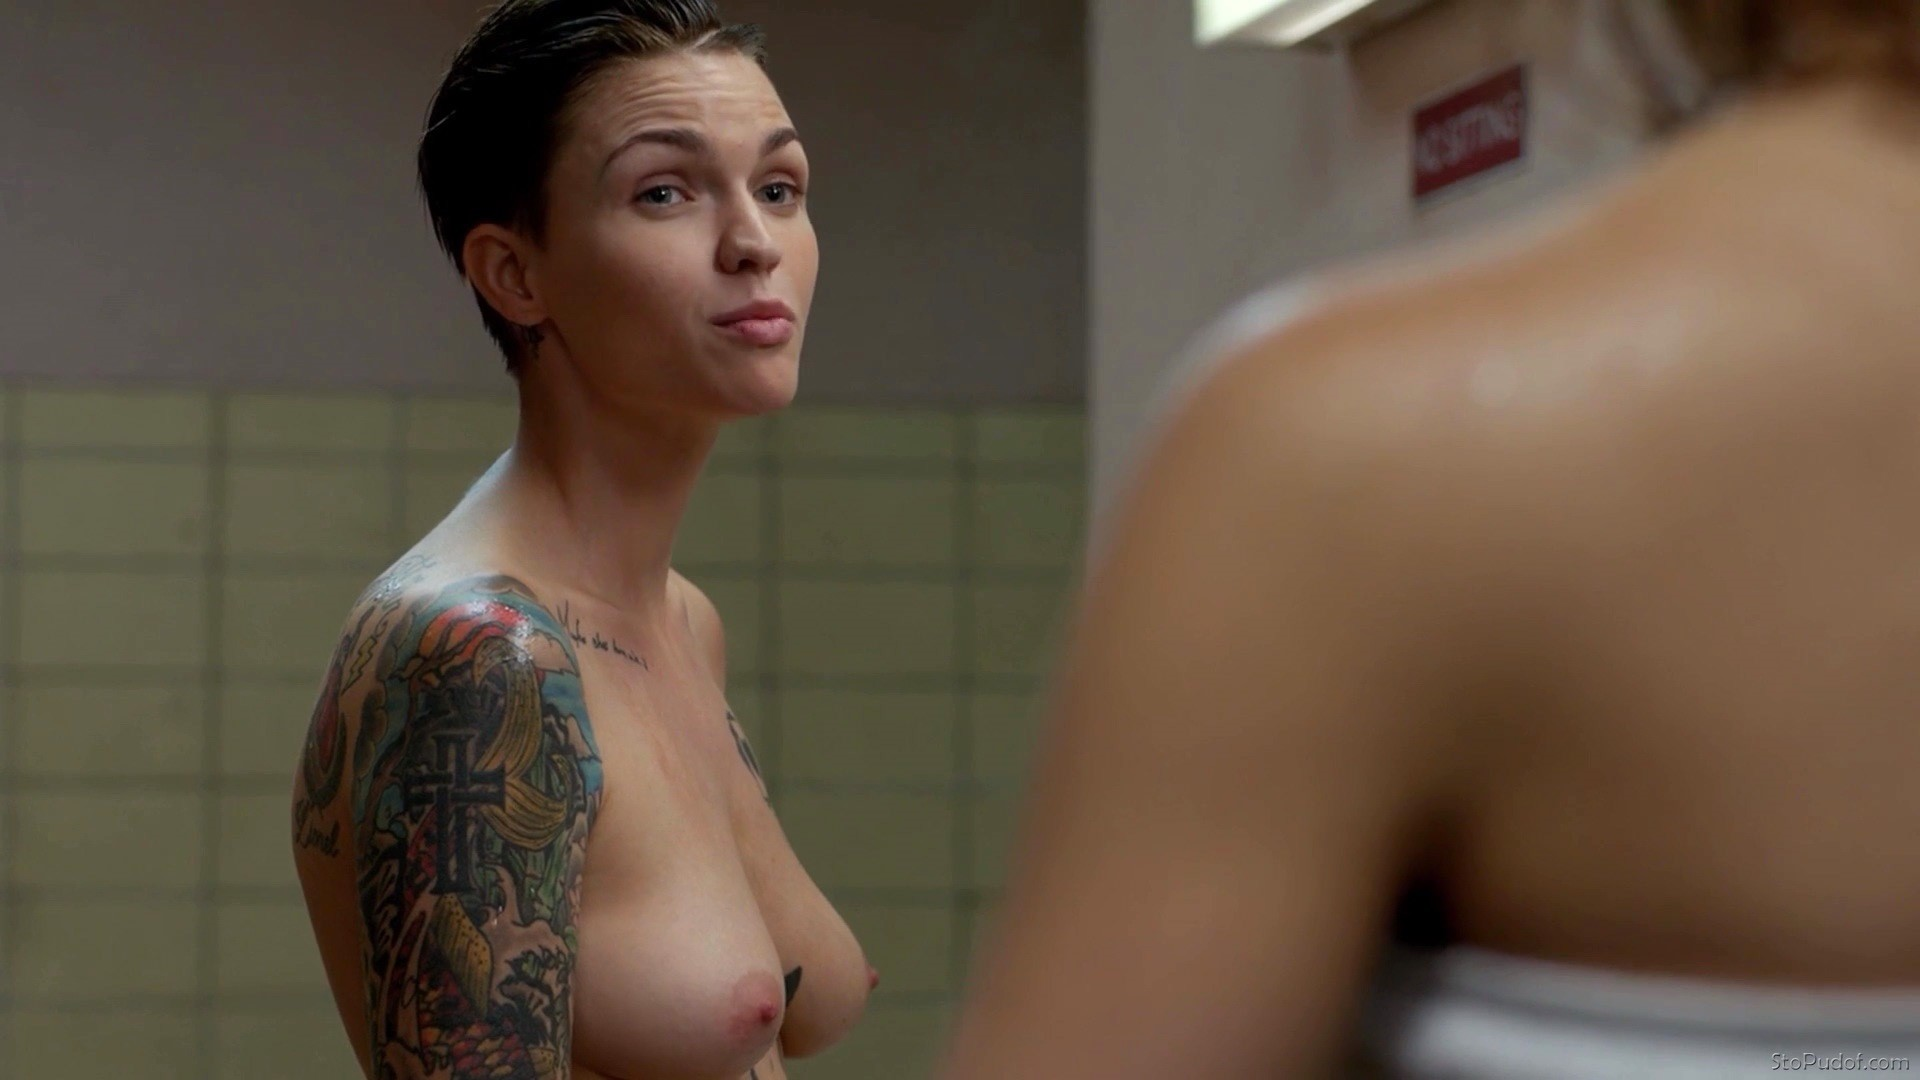 Ruby Rose naked pics free - UkPhotoSafari